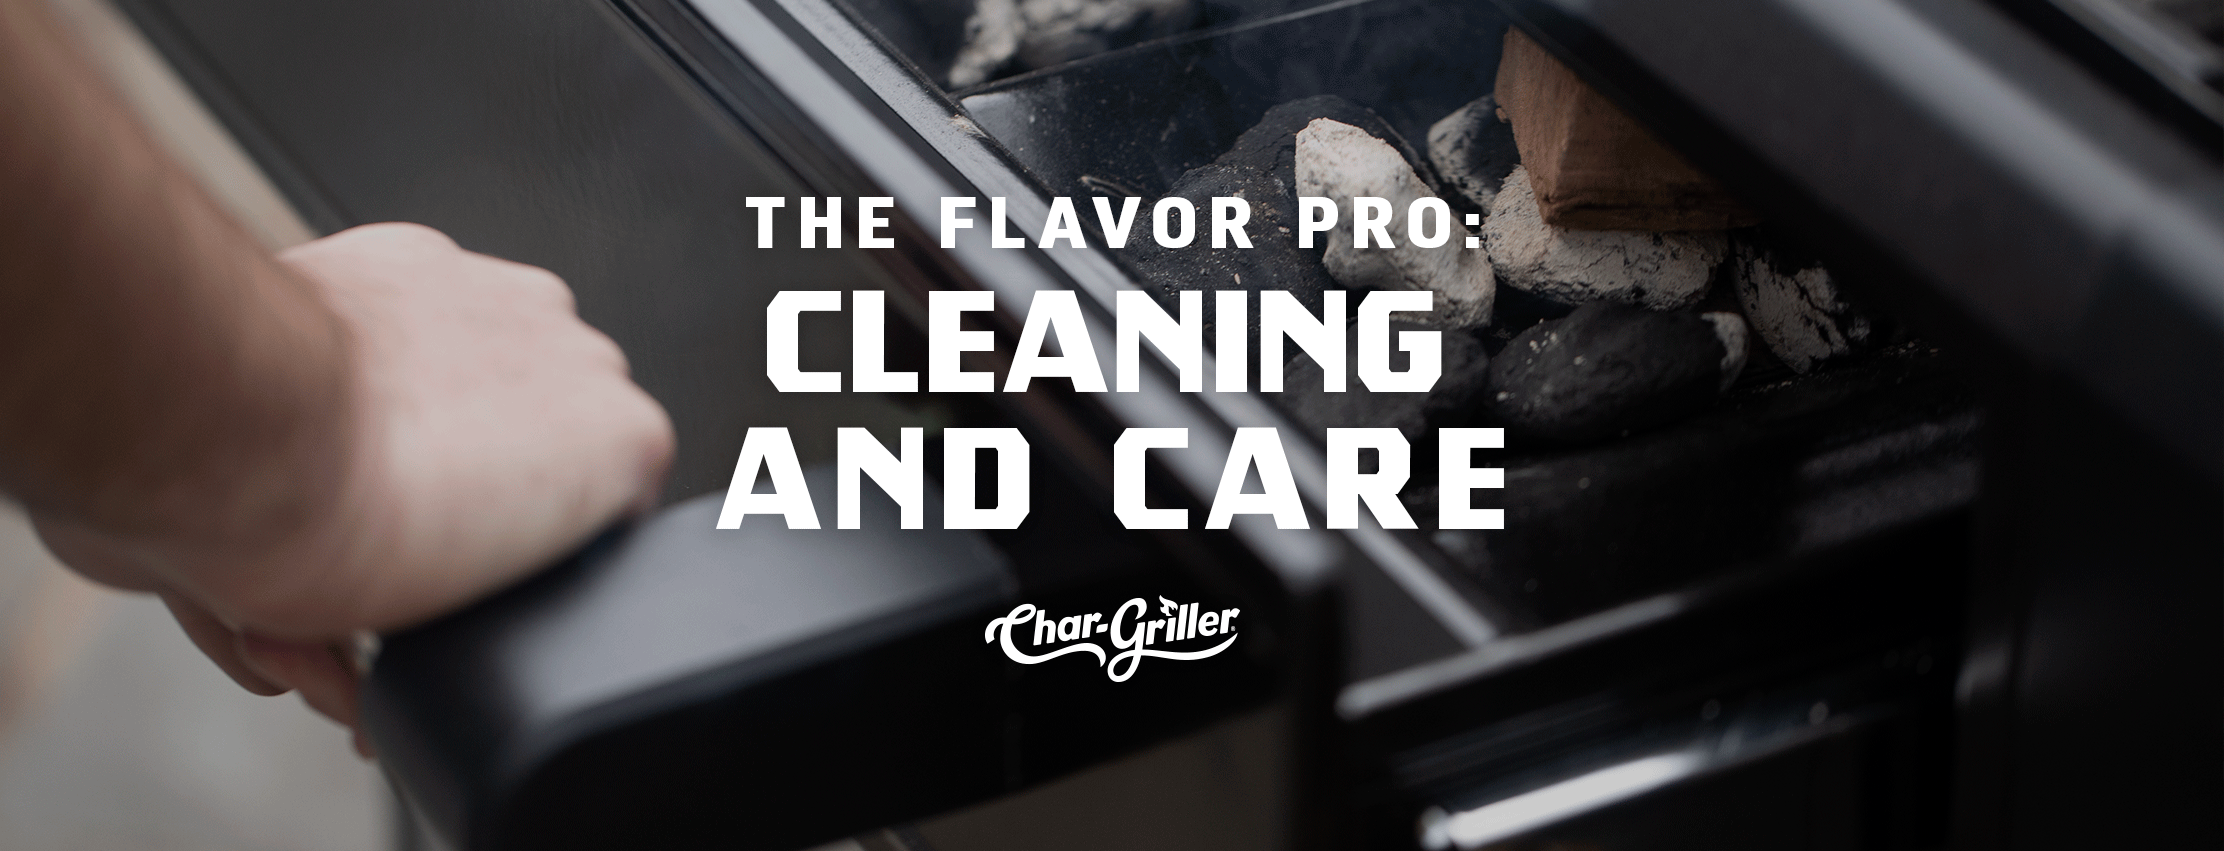 The Flavor Pro: Cleaning and Care